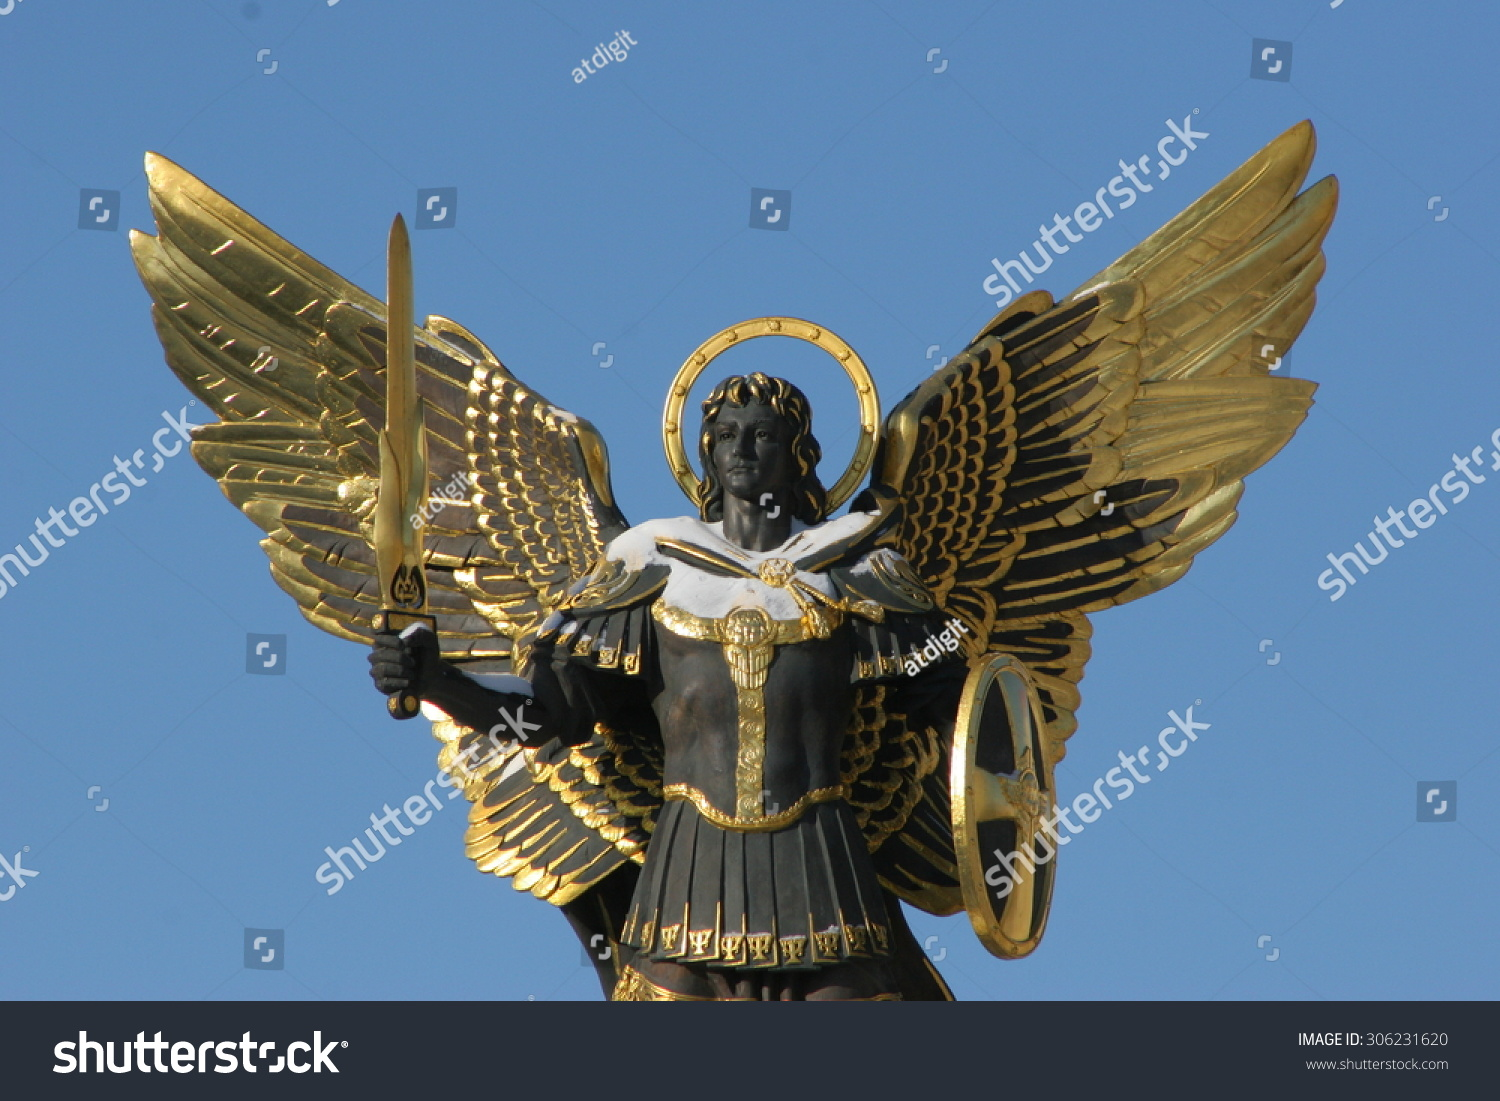 Royalty Free Archangel Michael Sculpture At 306231620 Stock Photo